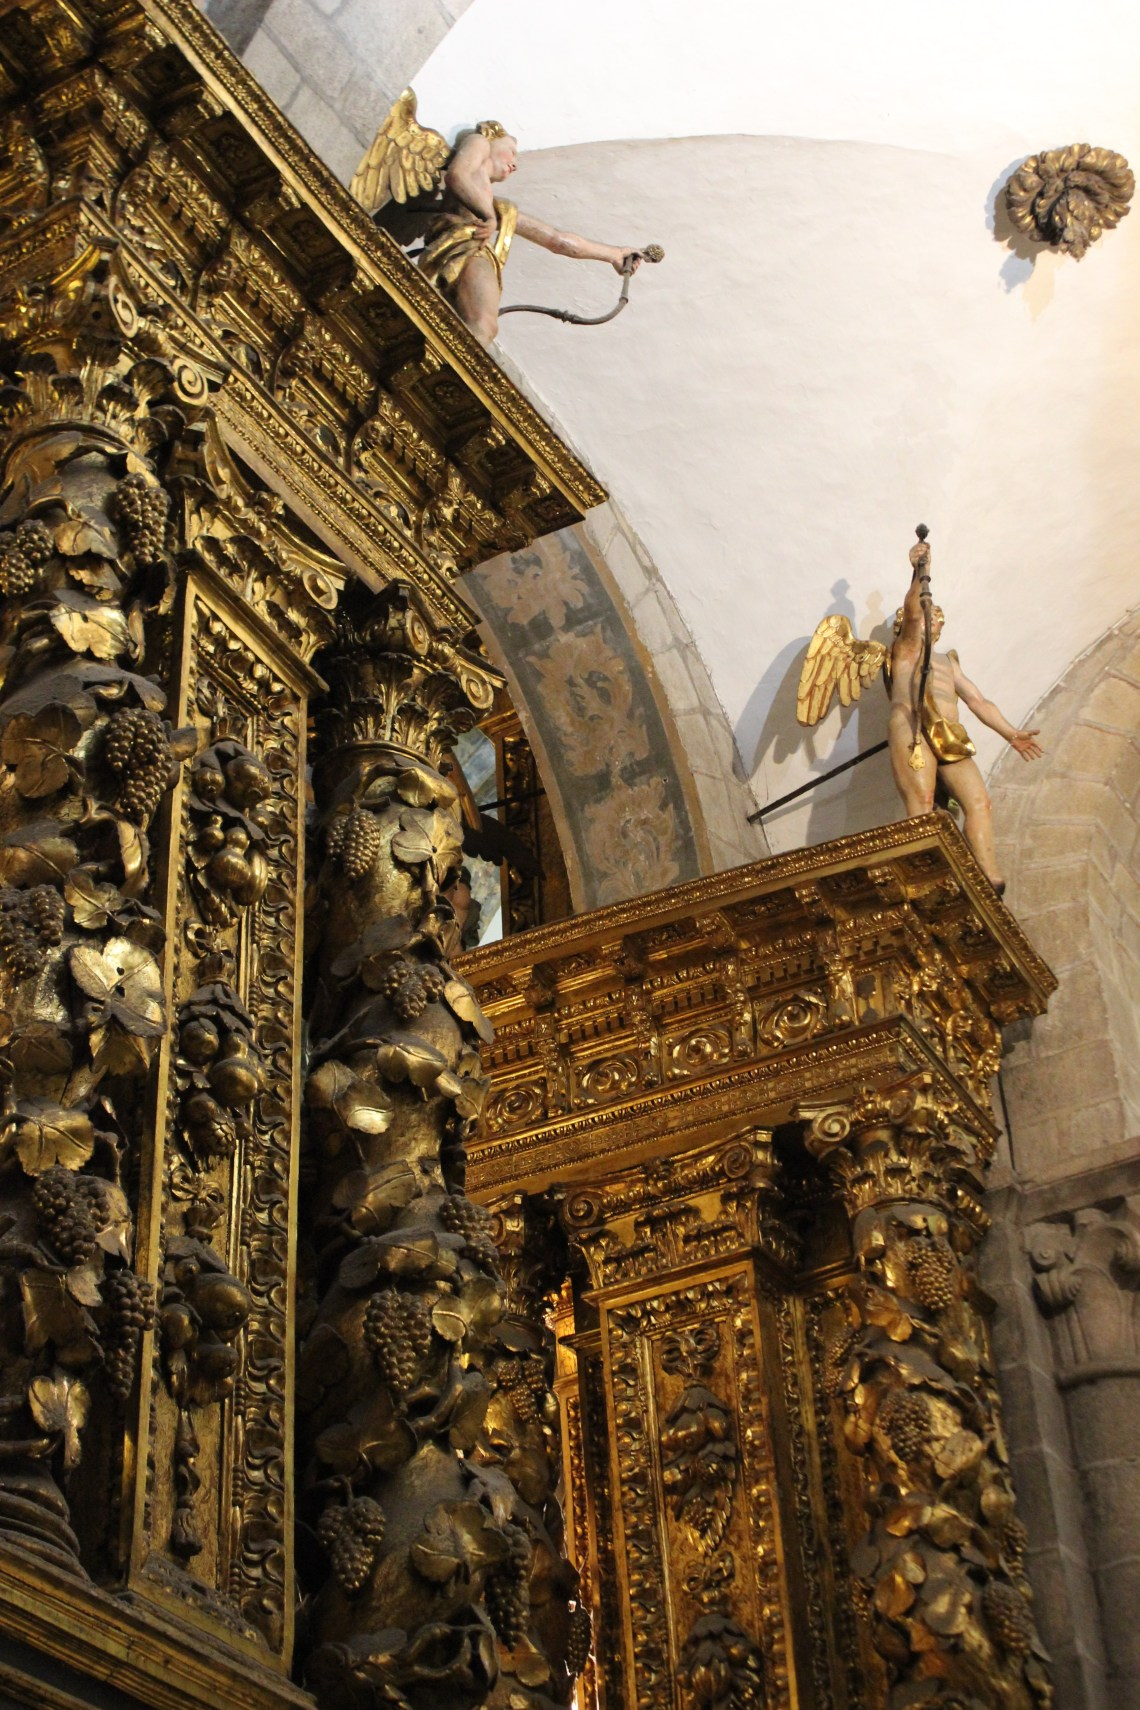 Baroque carvings in the Cathedral